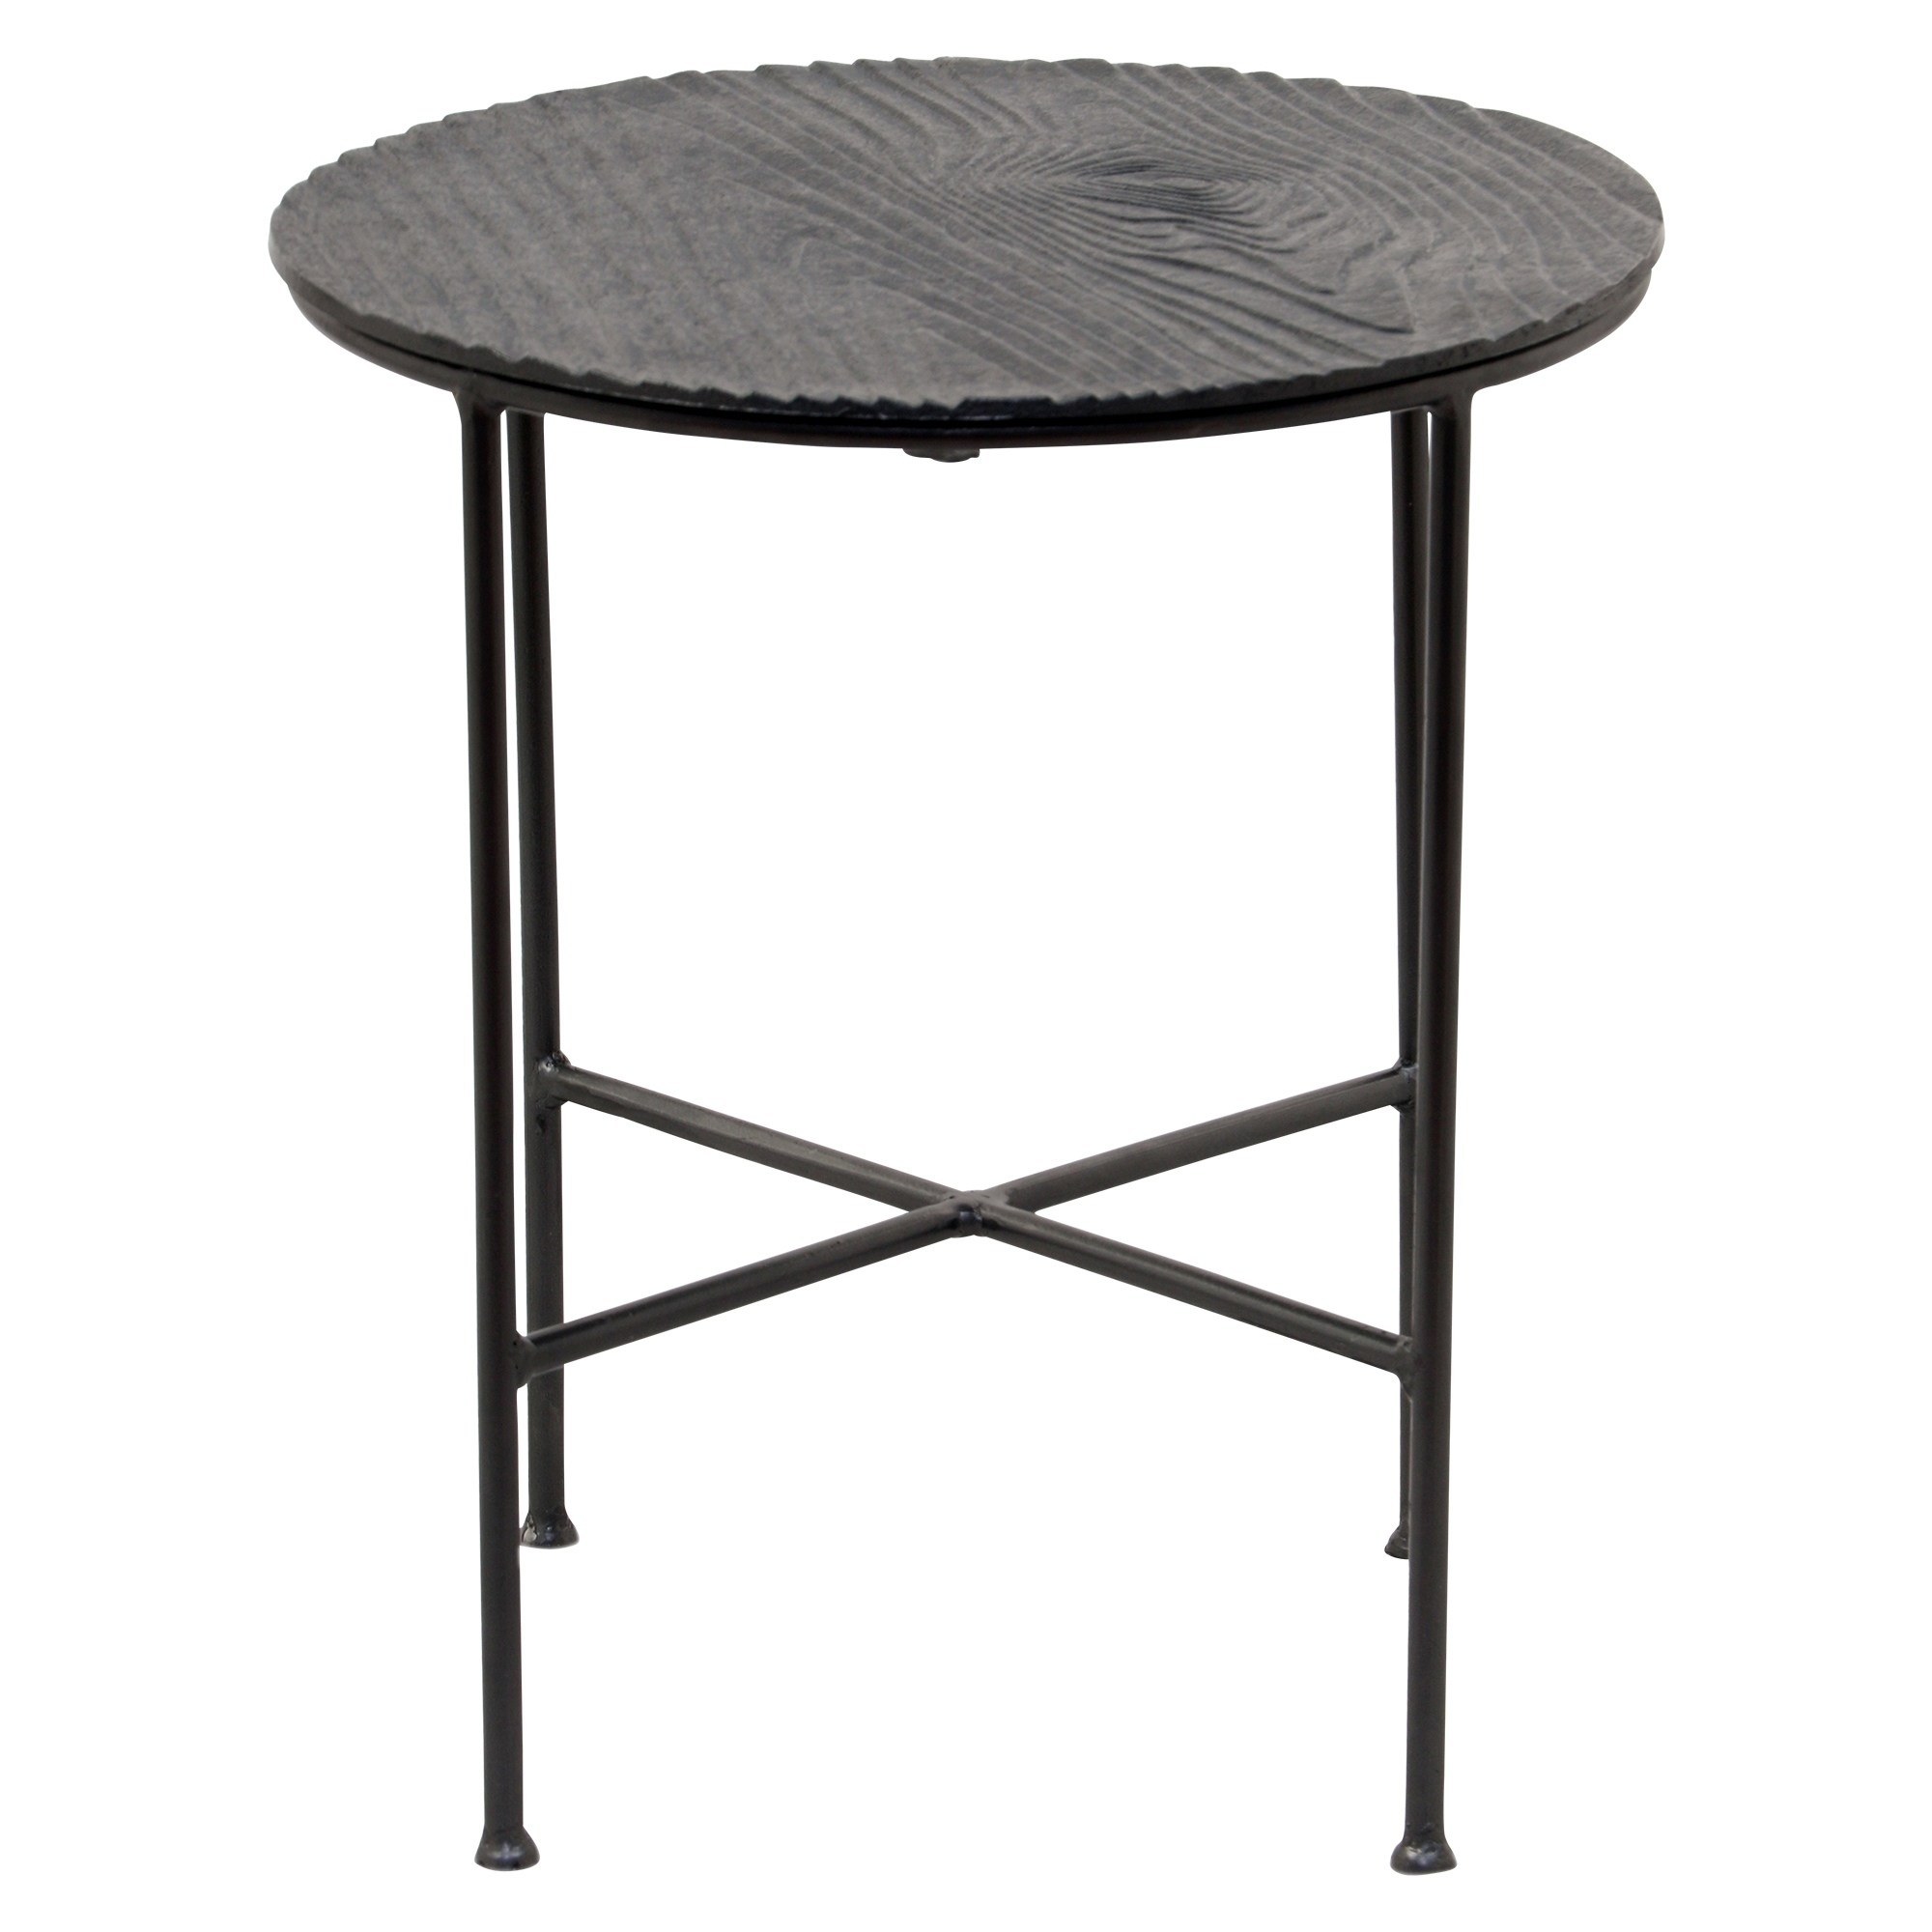 renwil bale grey aluminum round accent table free shipping today mini end modern tables for living room linens trestle base dining outdoor cooler woven coffee hadley with drawer